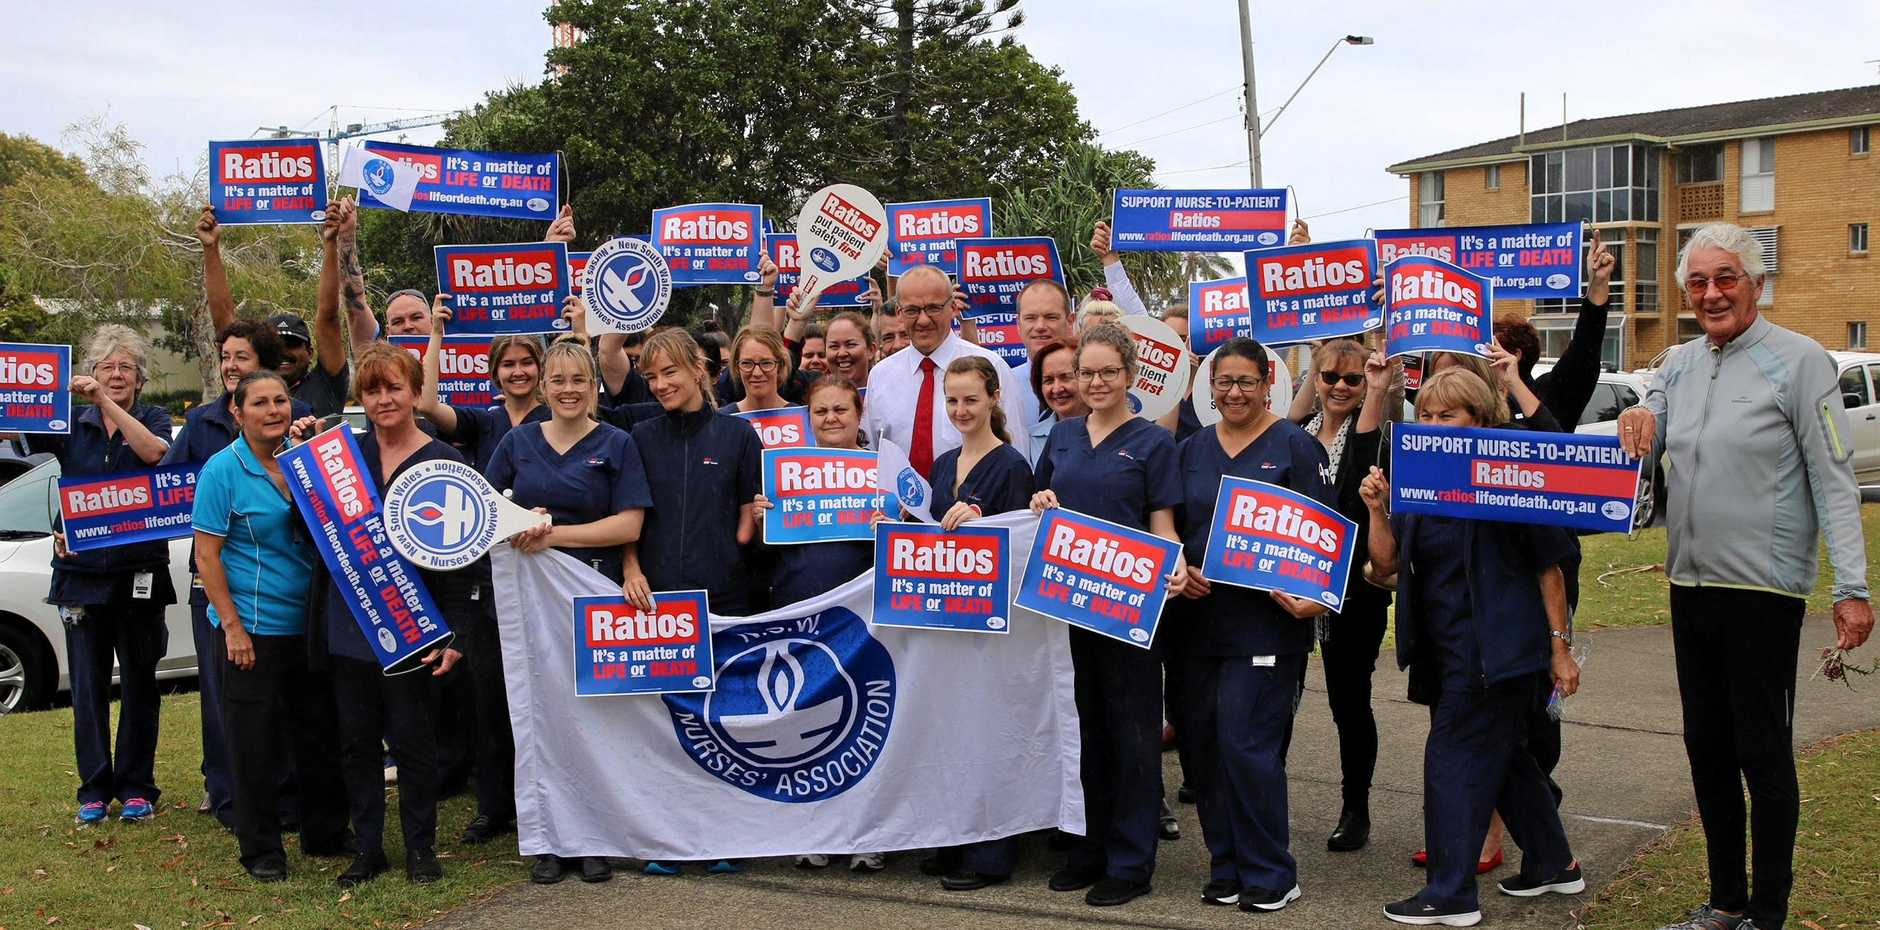 MORE JOBS: NSW Opposition leader Luke Foley meets with Tweed nurses to discuss patient-to-nurse ratios.